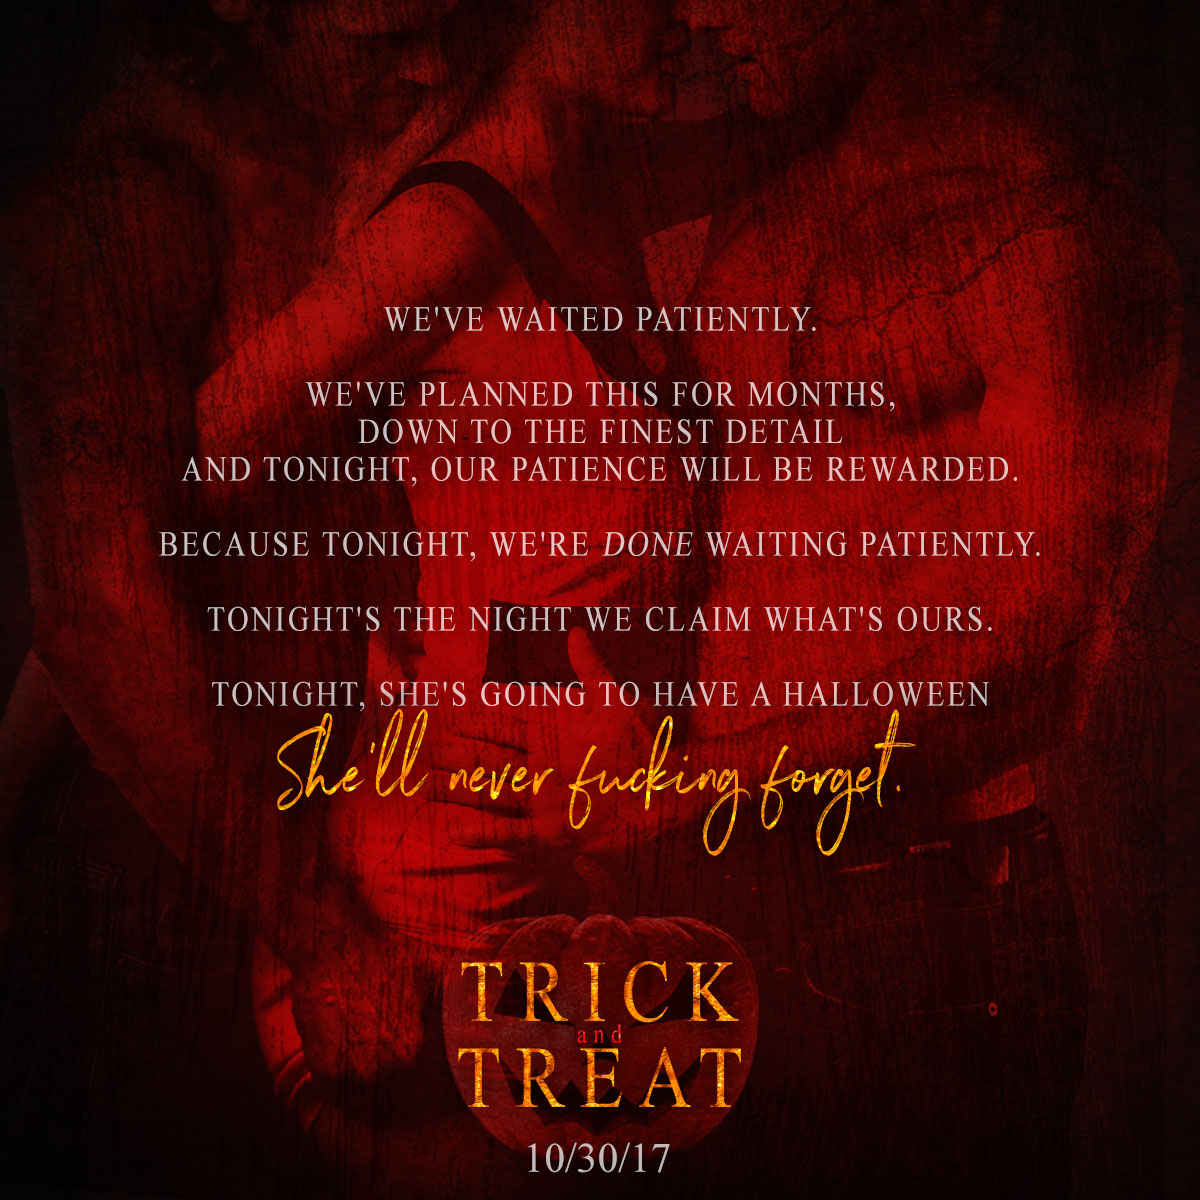 Trick-And-Treat-Teaser2.jpg